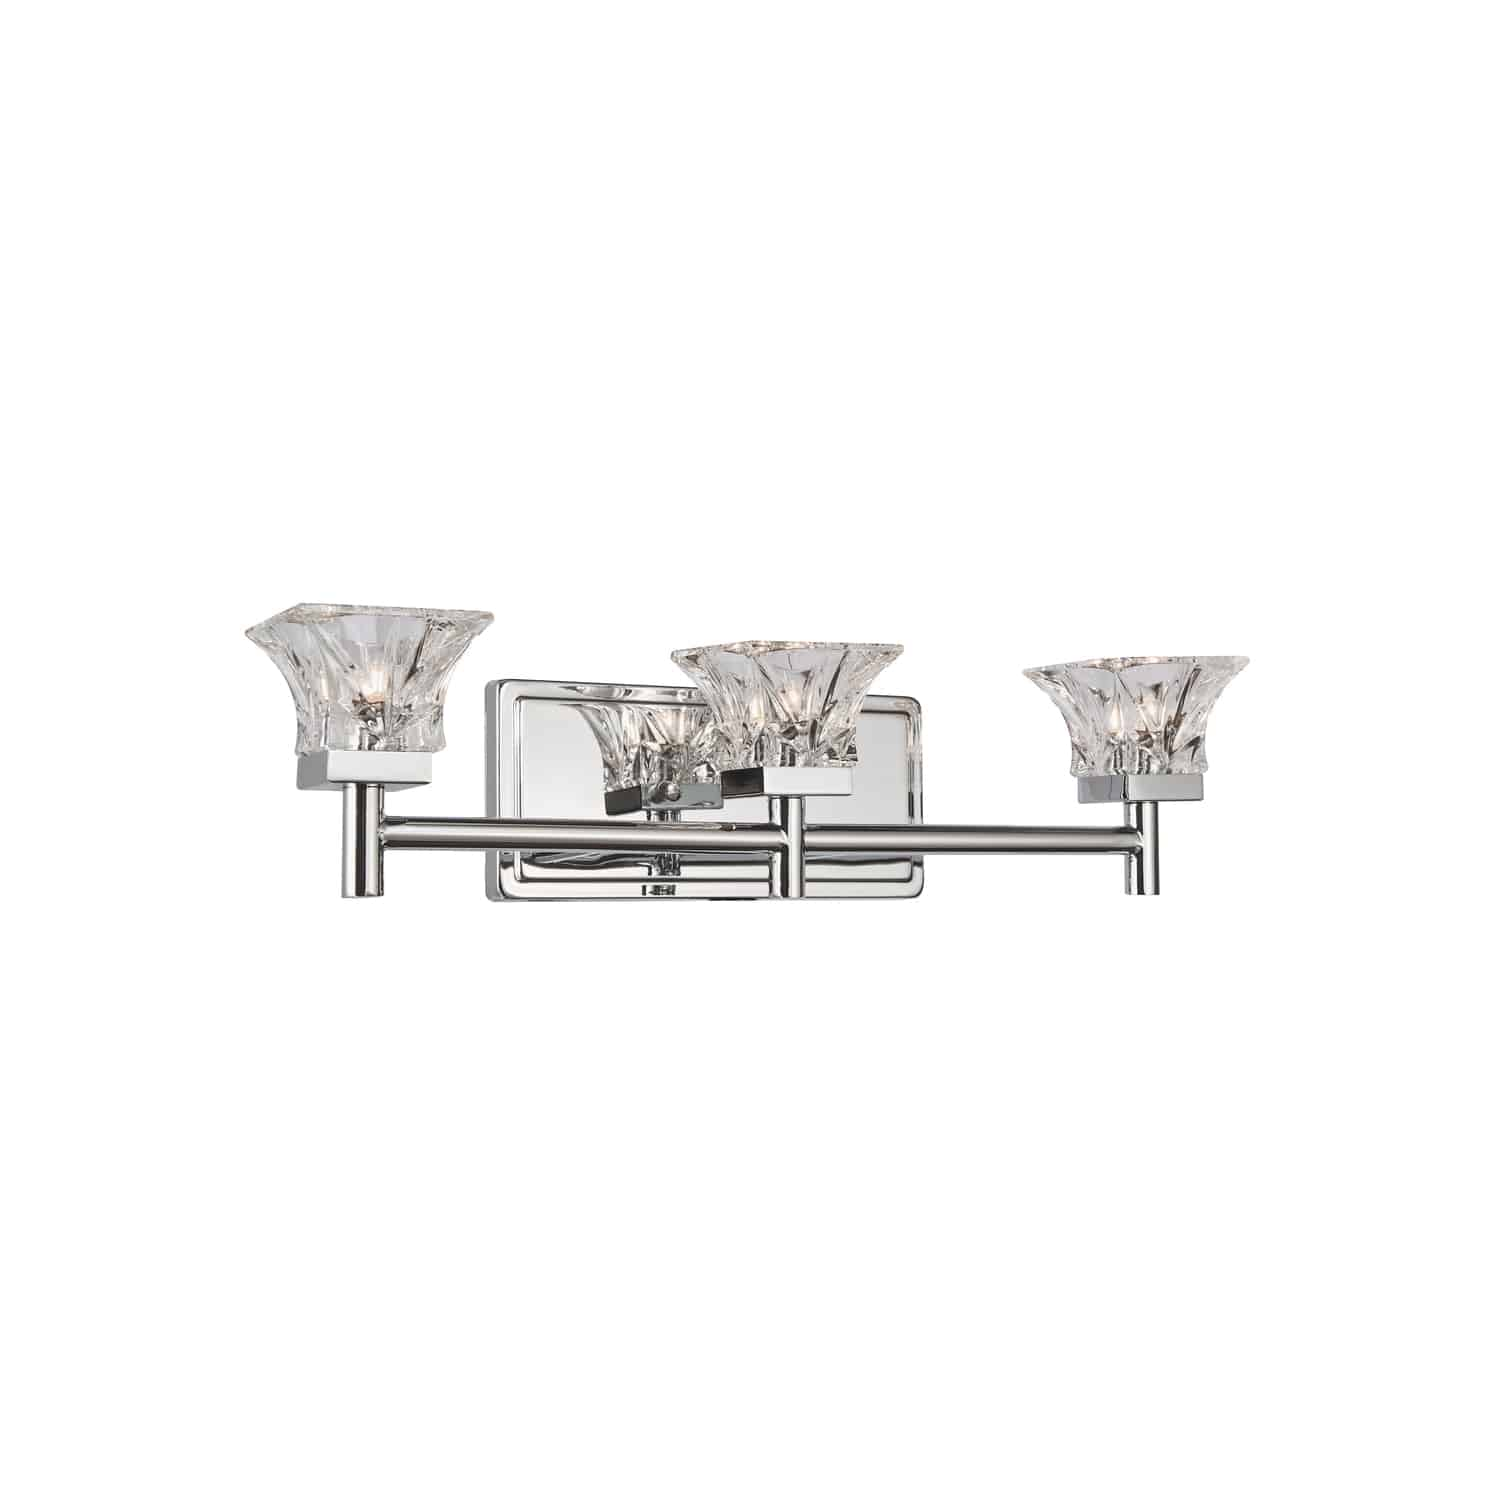 3 Light Halogen Vanity, Polished Chrome Finish with Clear Glass